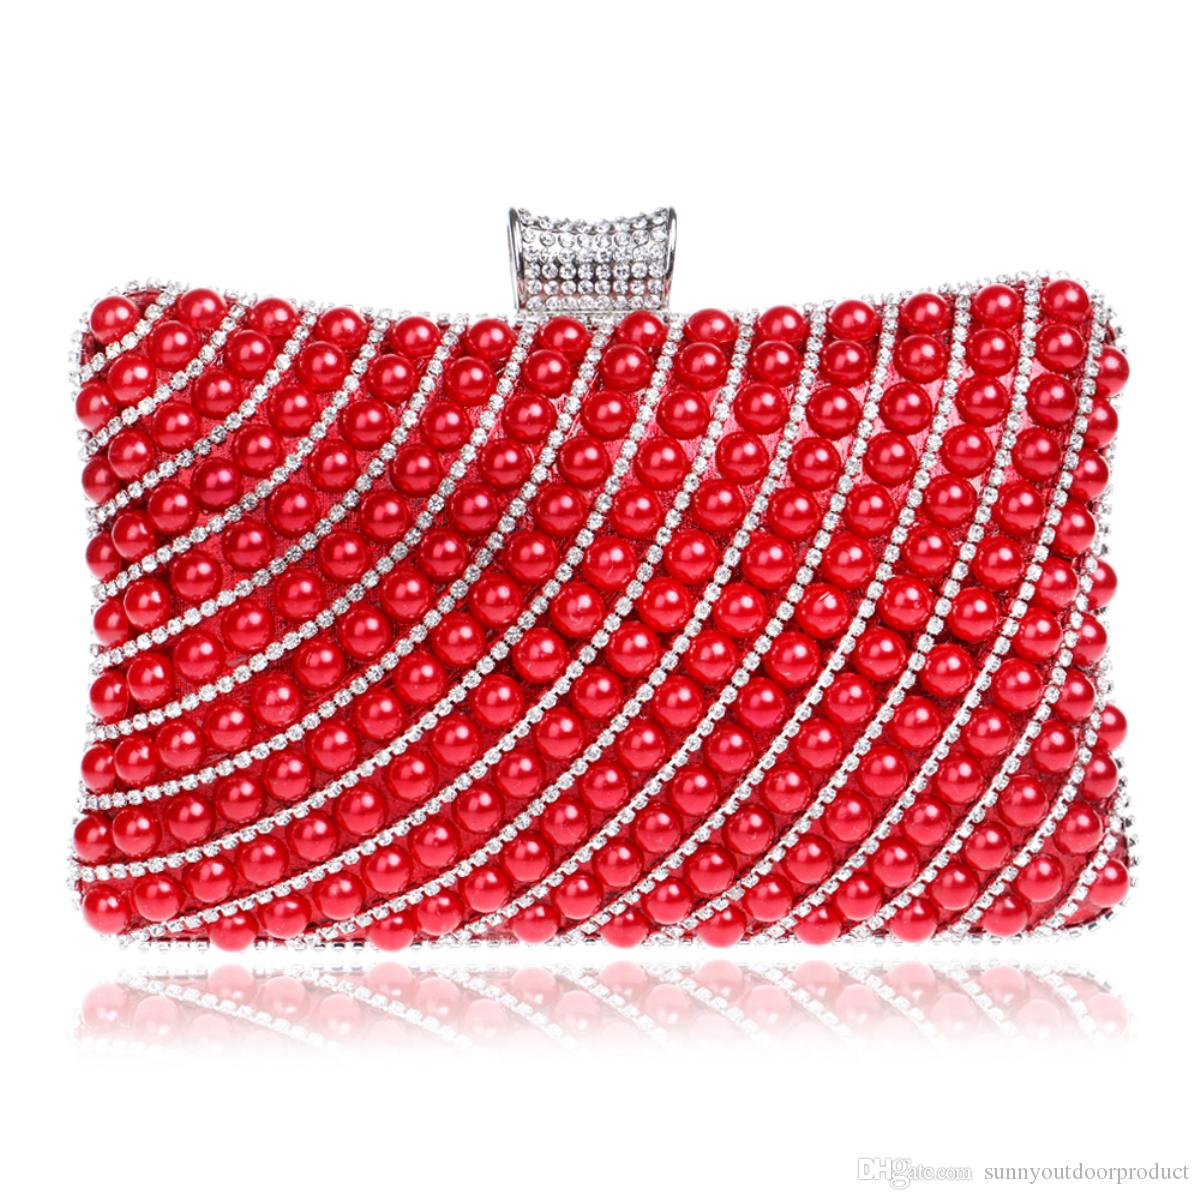 New Fashion Women Diamond Pearl Beaded Evening Clutch Bag With Finger Ring Shoulder Bag Lady Handbag Wallet Purse For Wedding Party Dinner